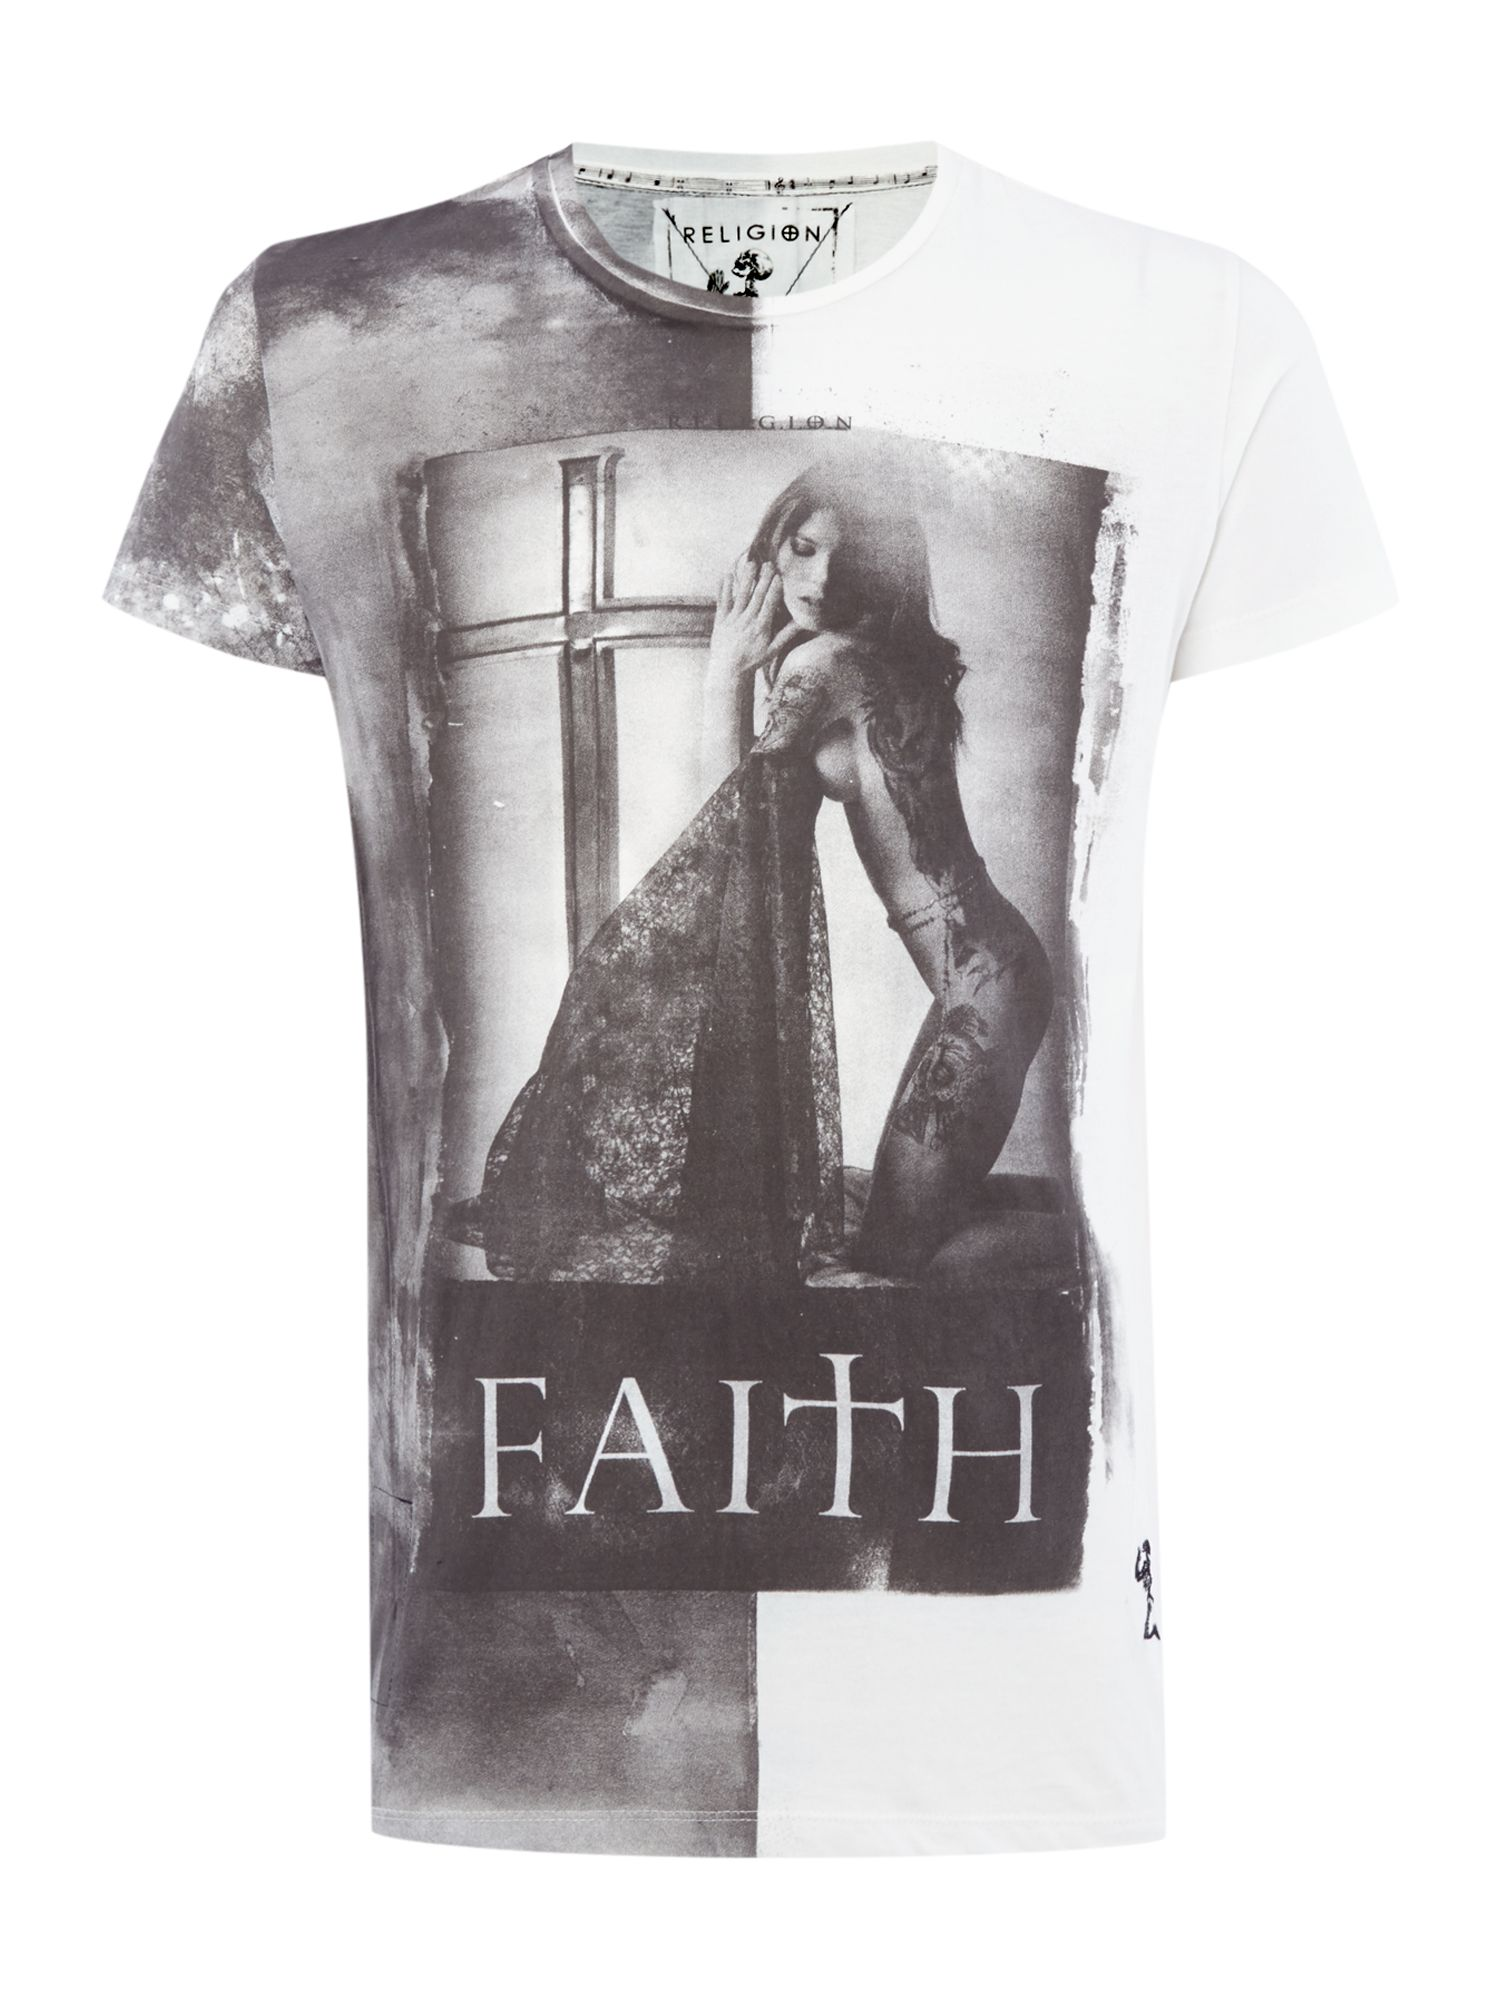 Faith printed t shirt